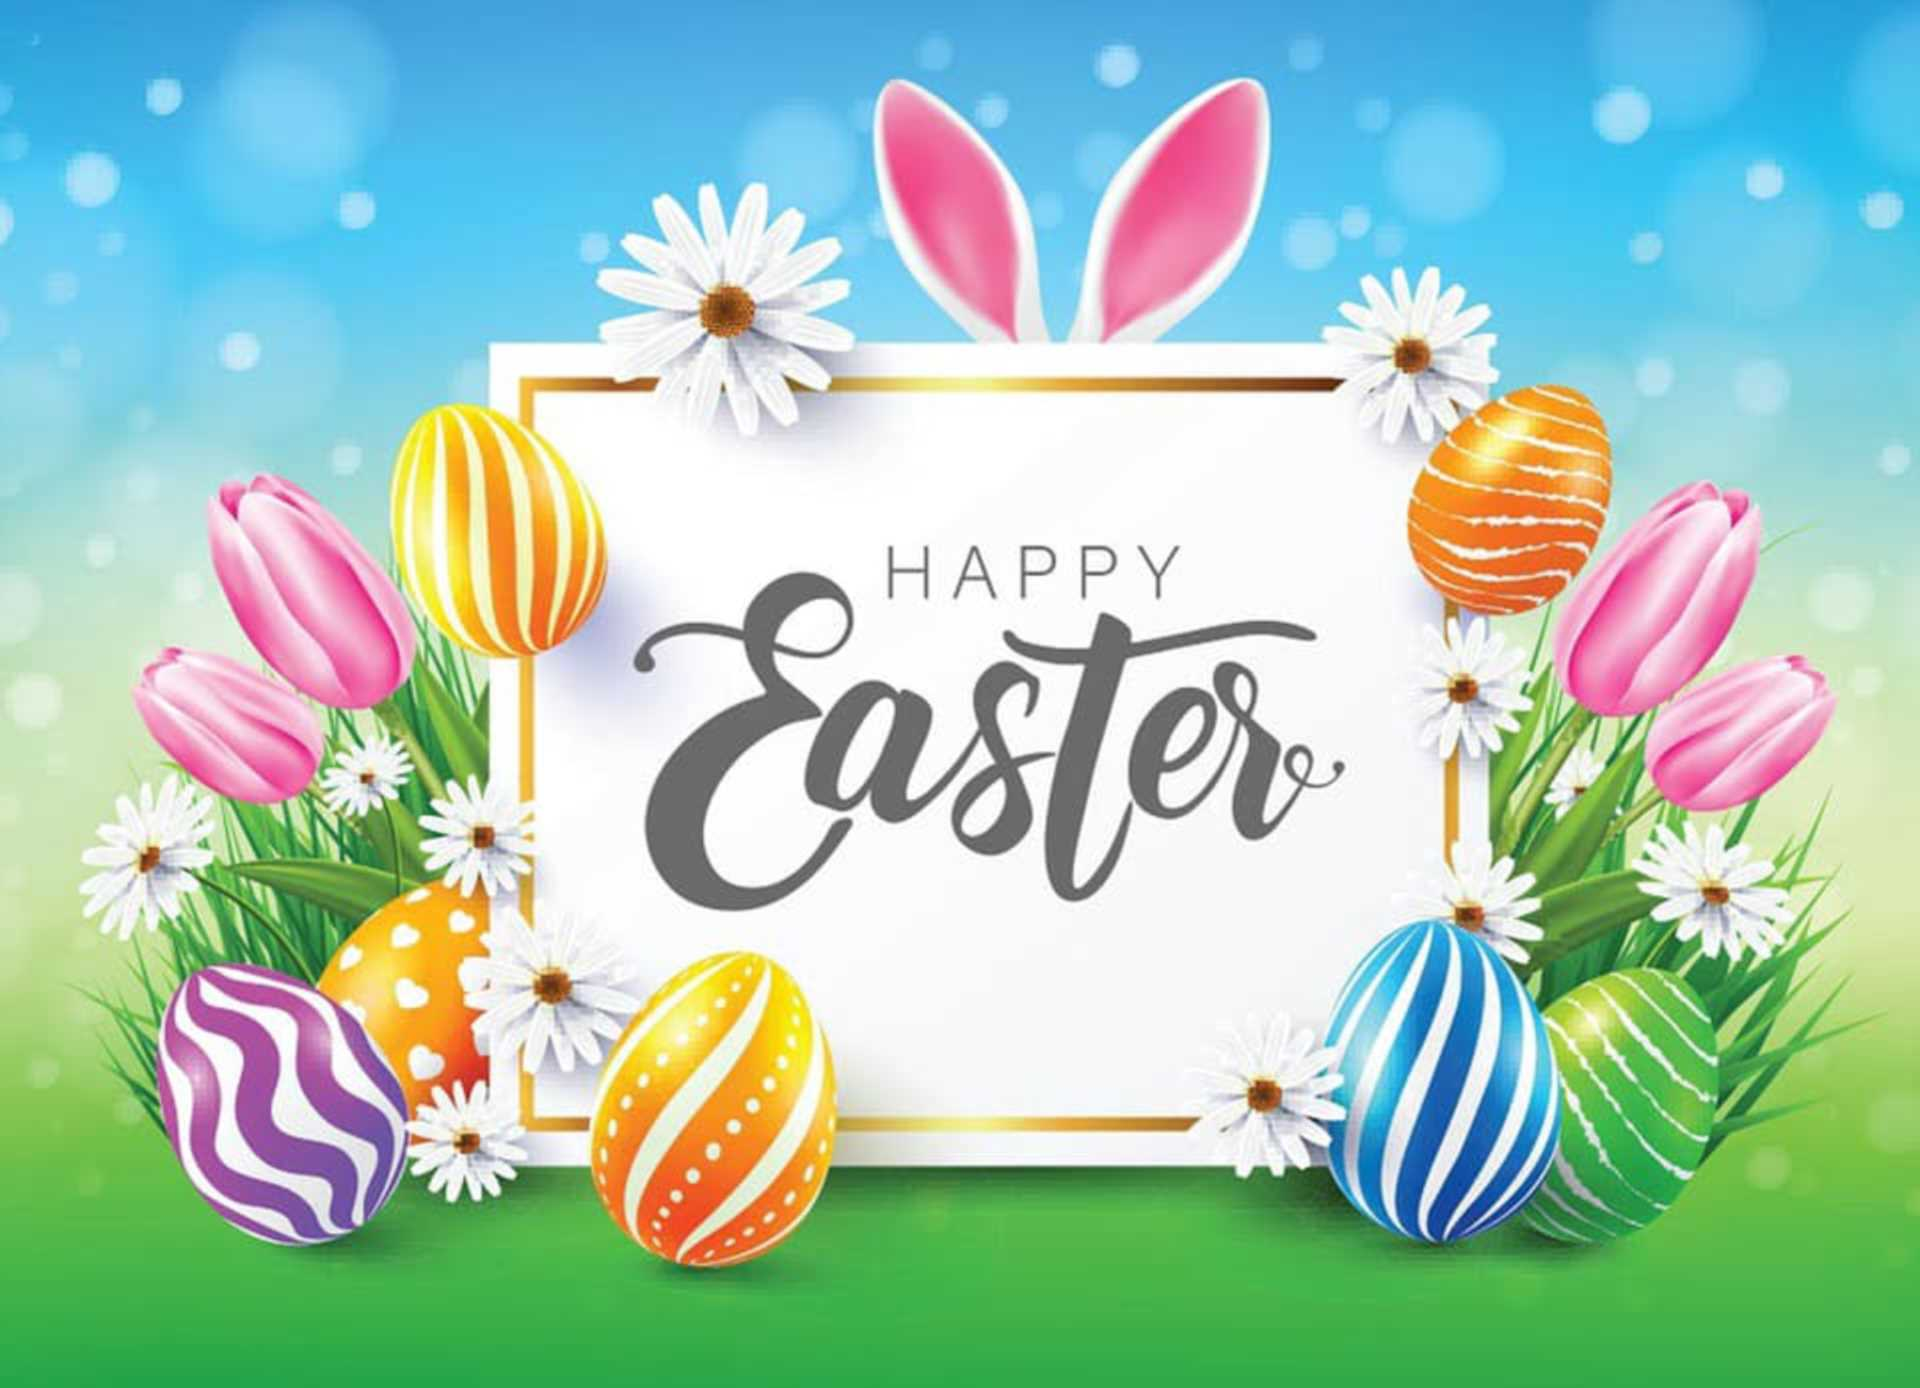 Happy Easter to all our lovely Clients